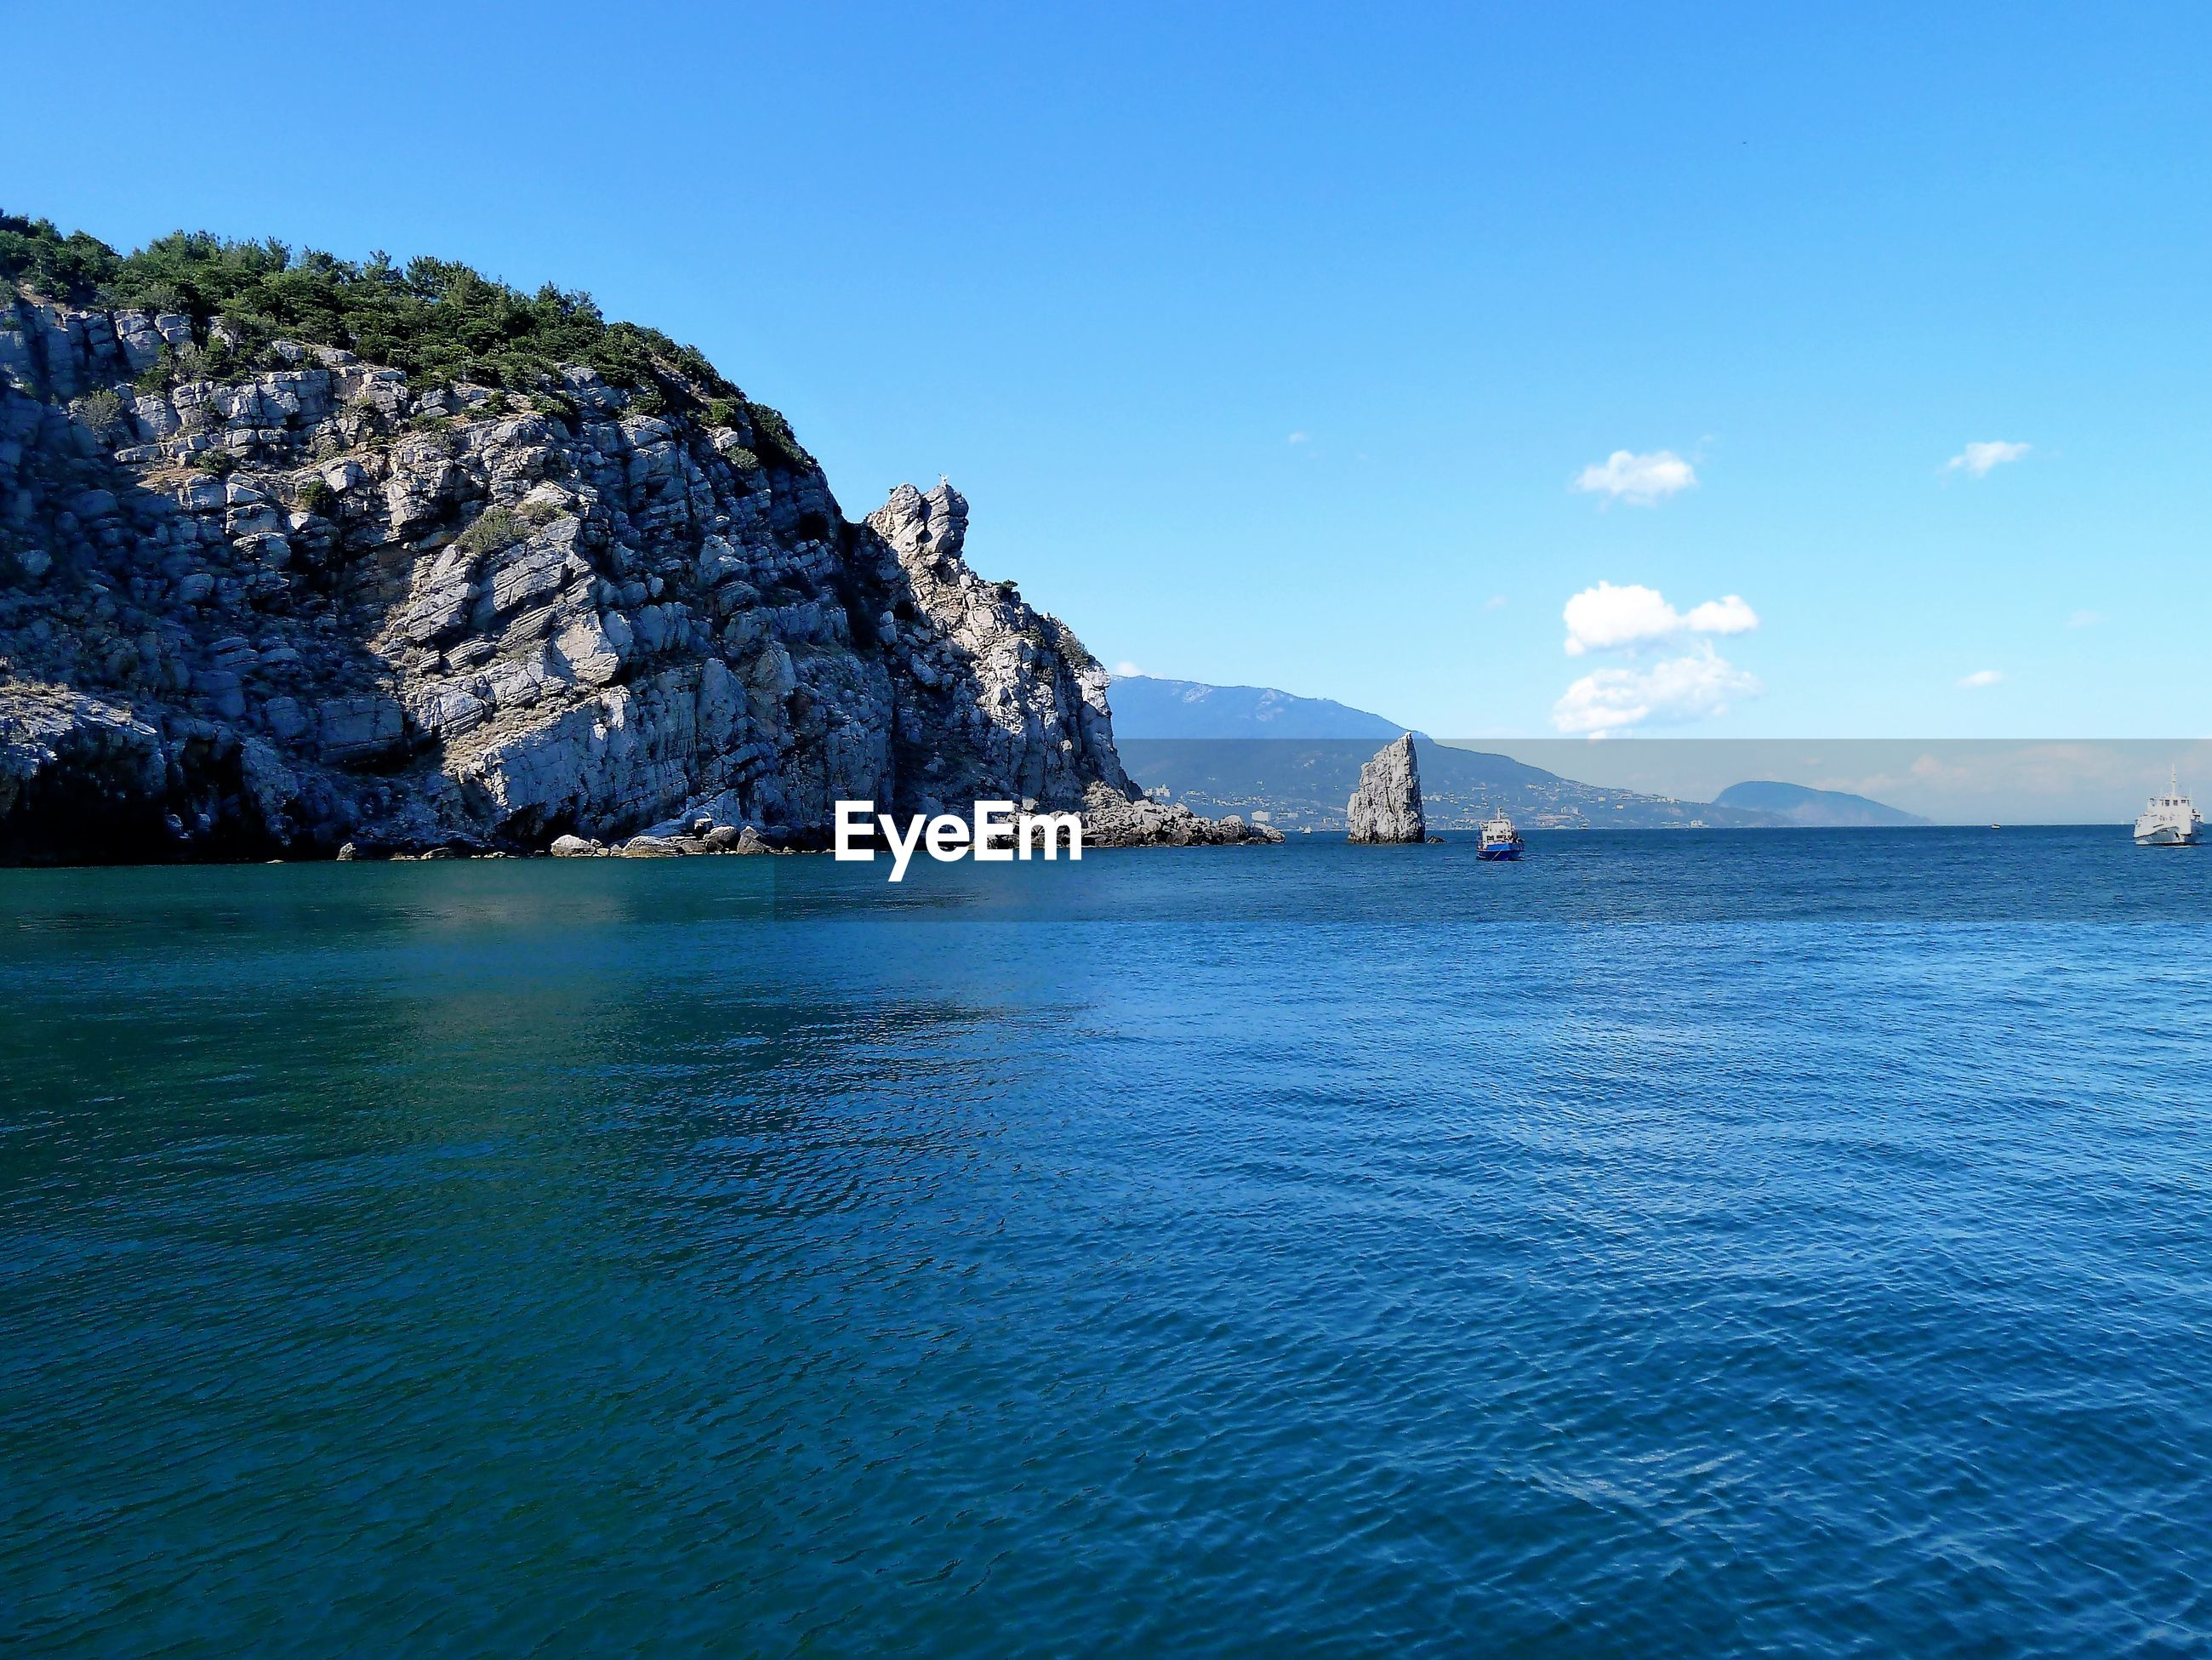 SCENIC VIEW OF SEA AND ROCKS AGAINST BLUE SKY